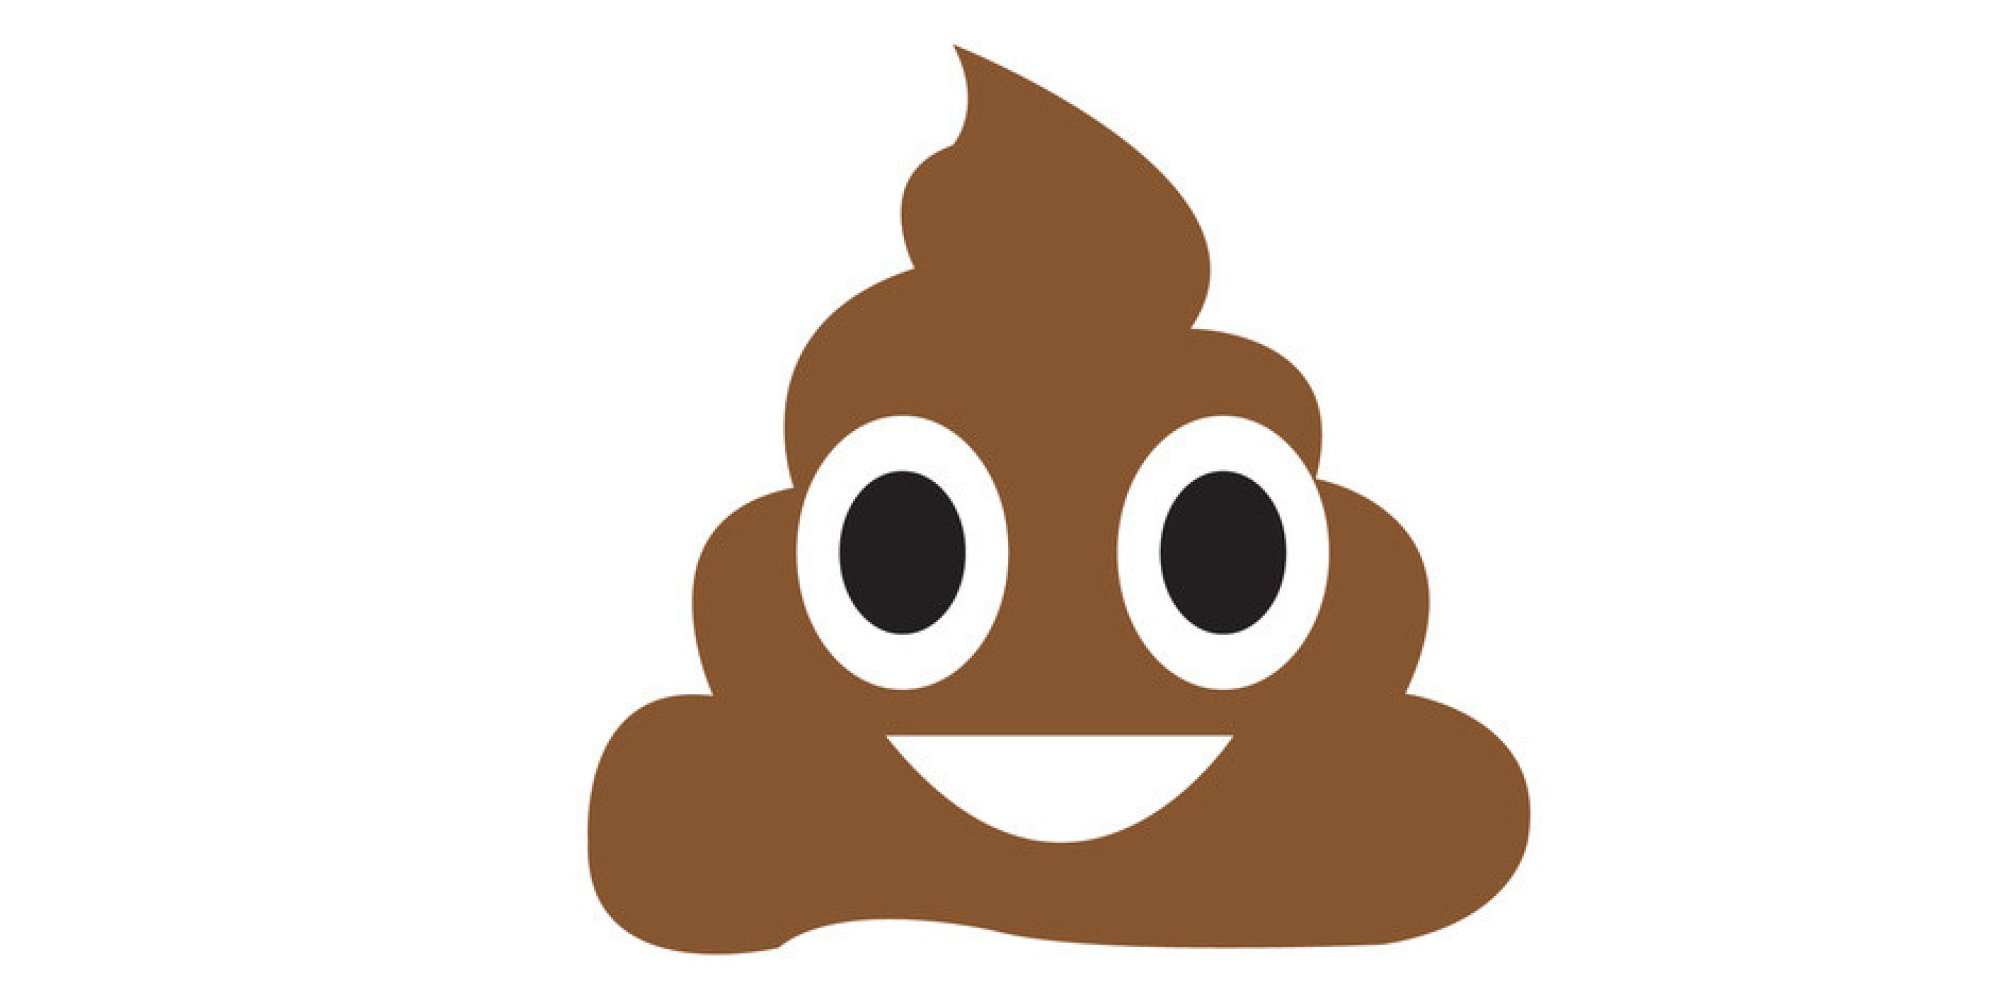 clipart download Poop clipart. Free cliparts download clip.